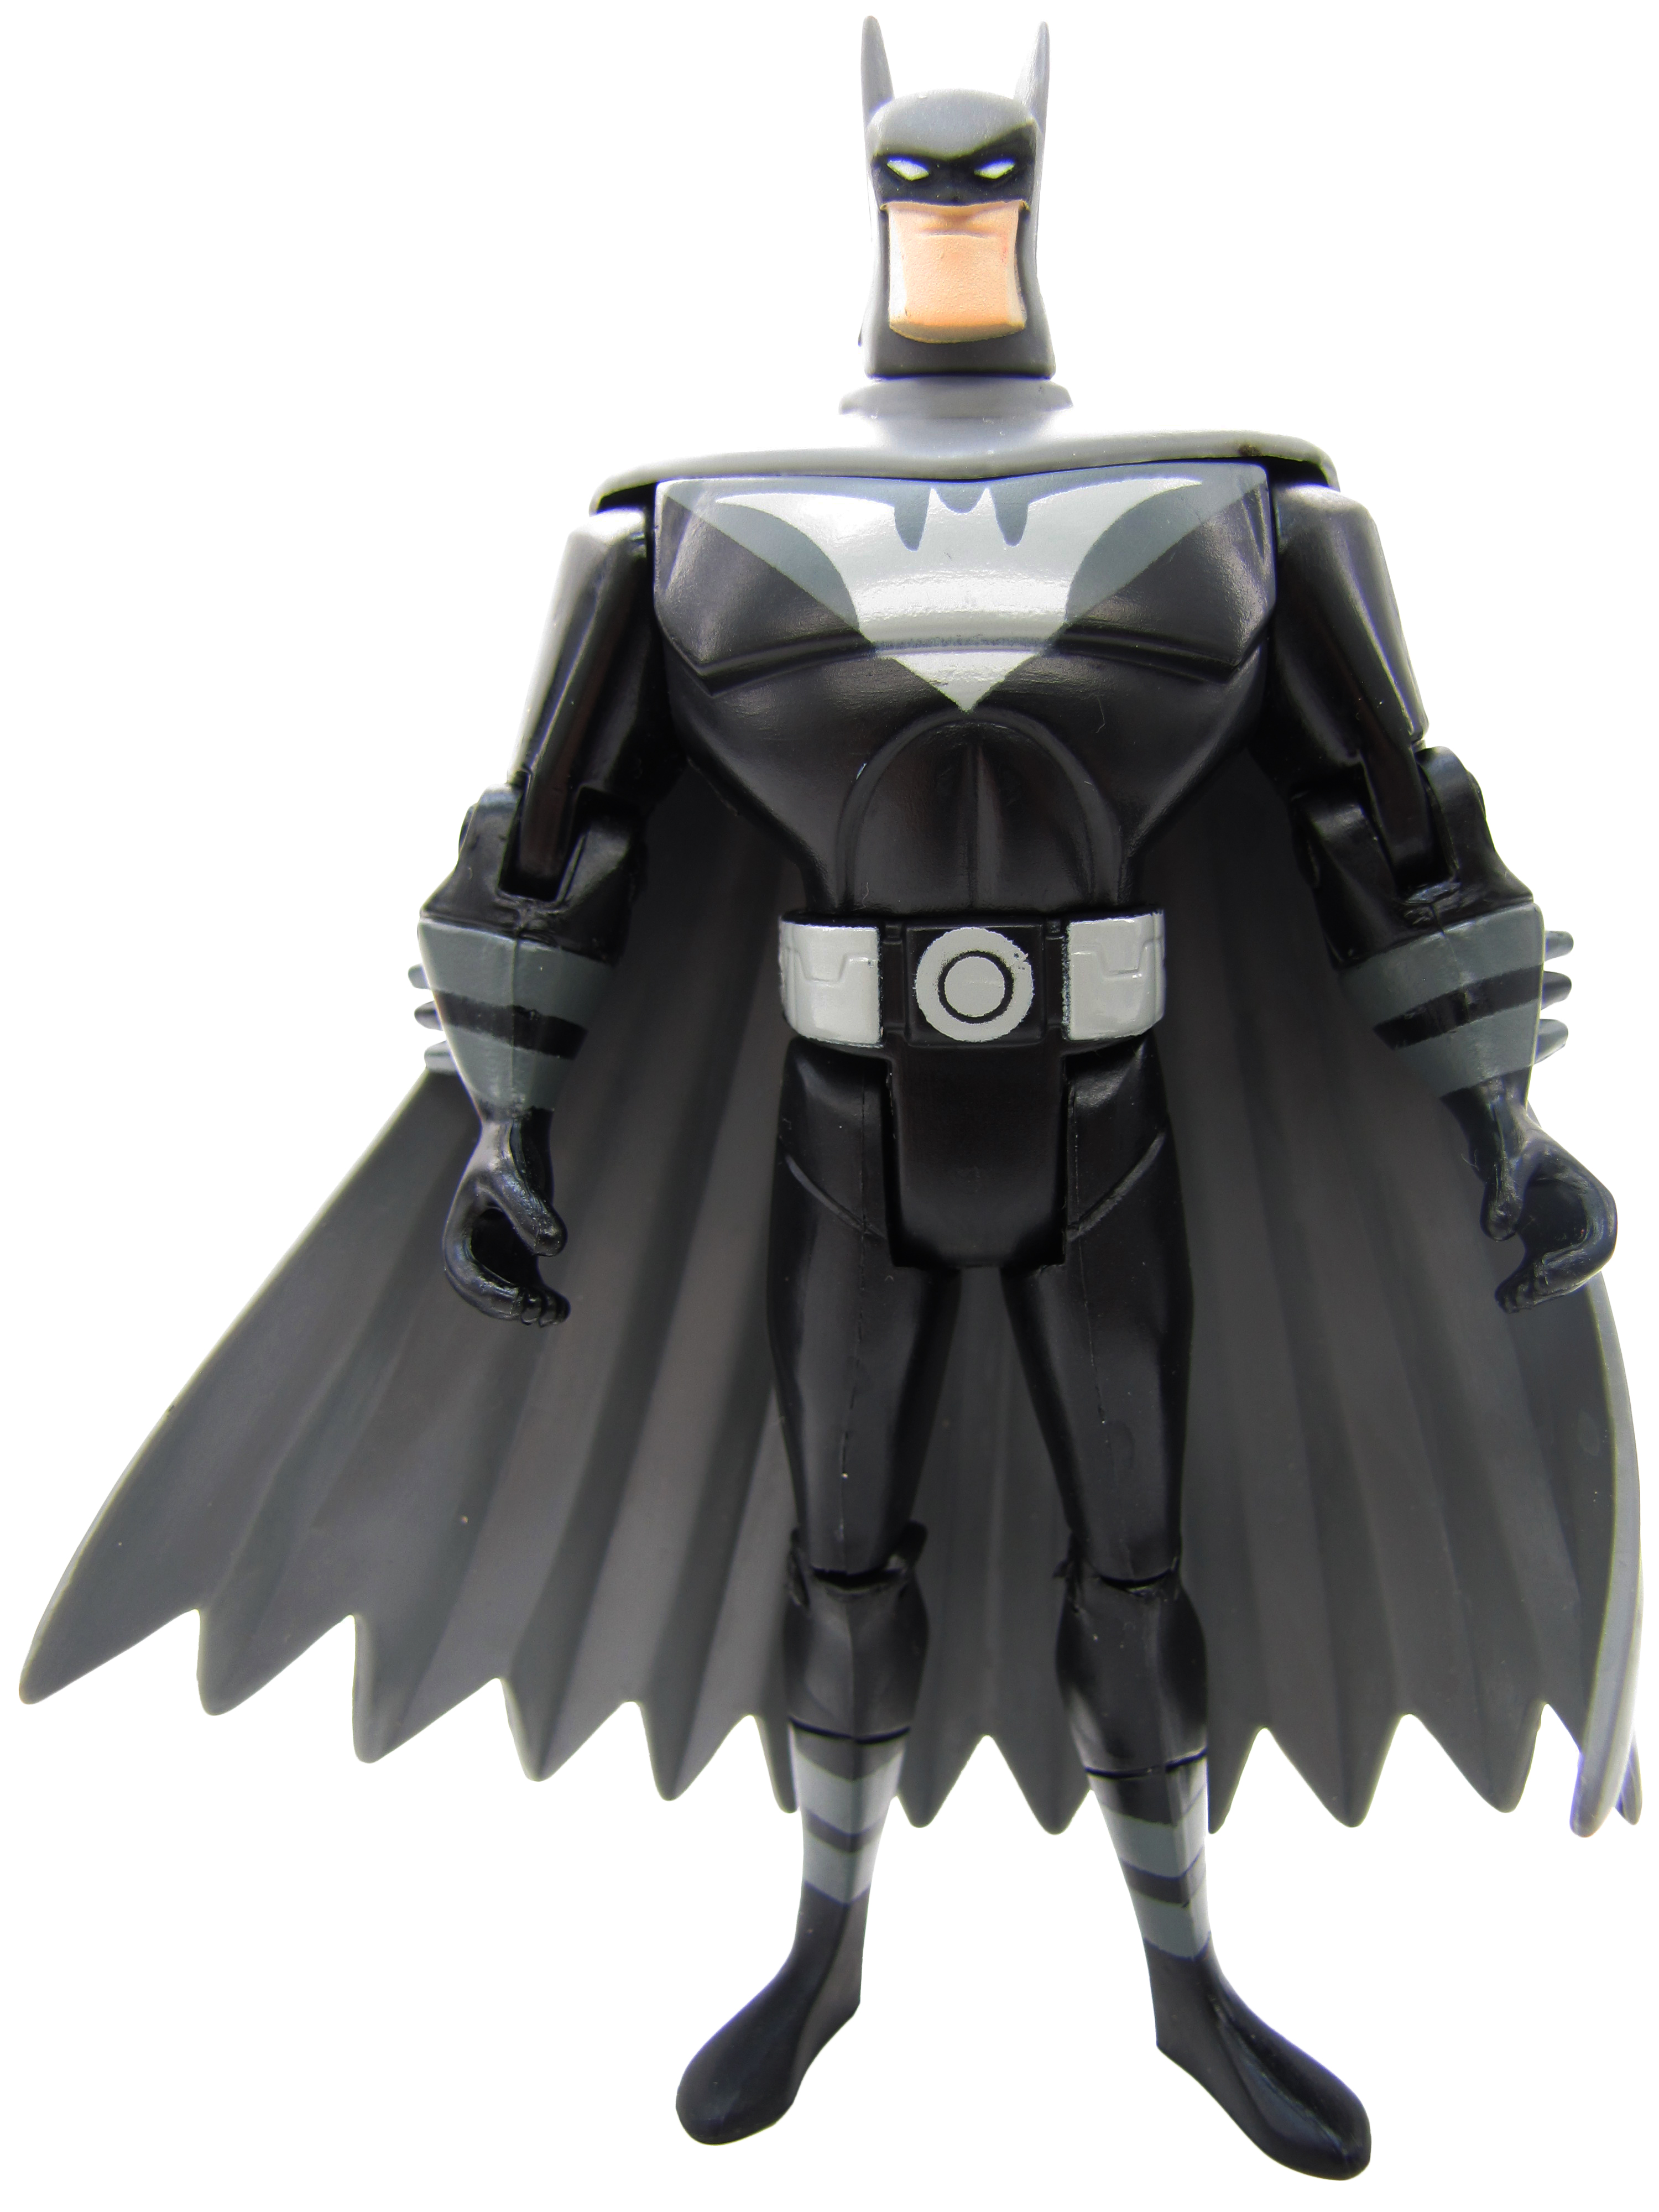 2006 Justice League Unlimited JUSTICE LORDS BATMAN Complete